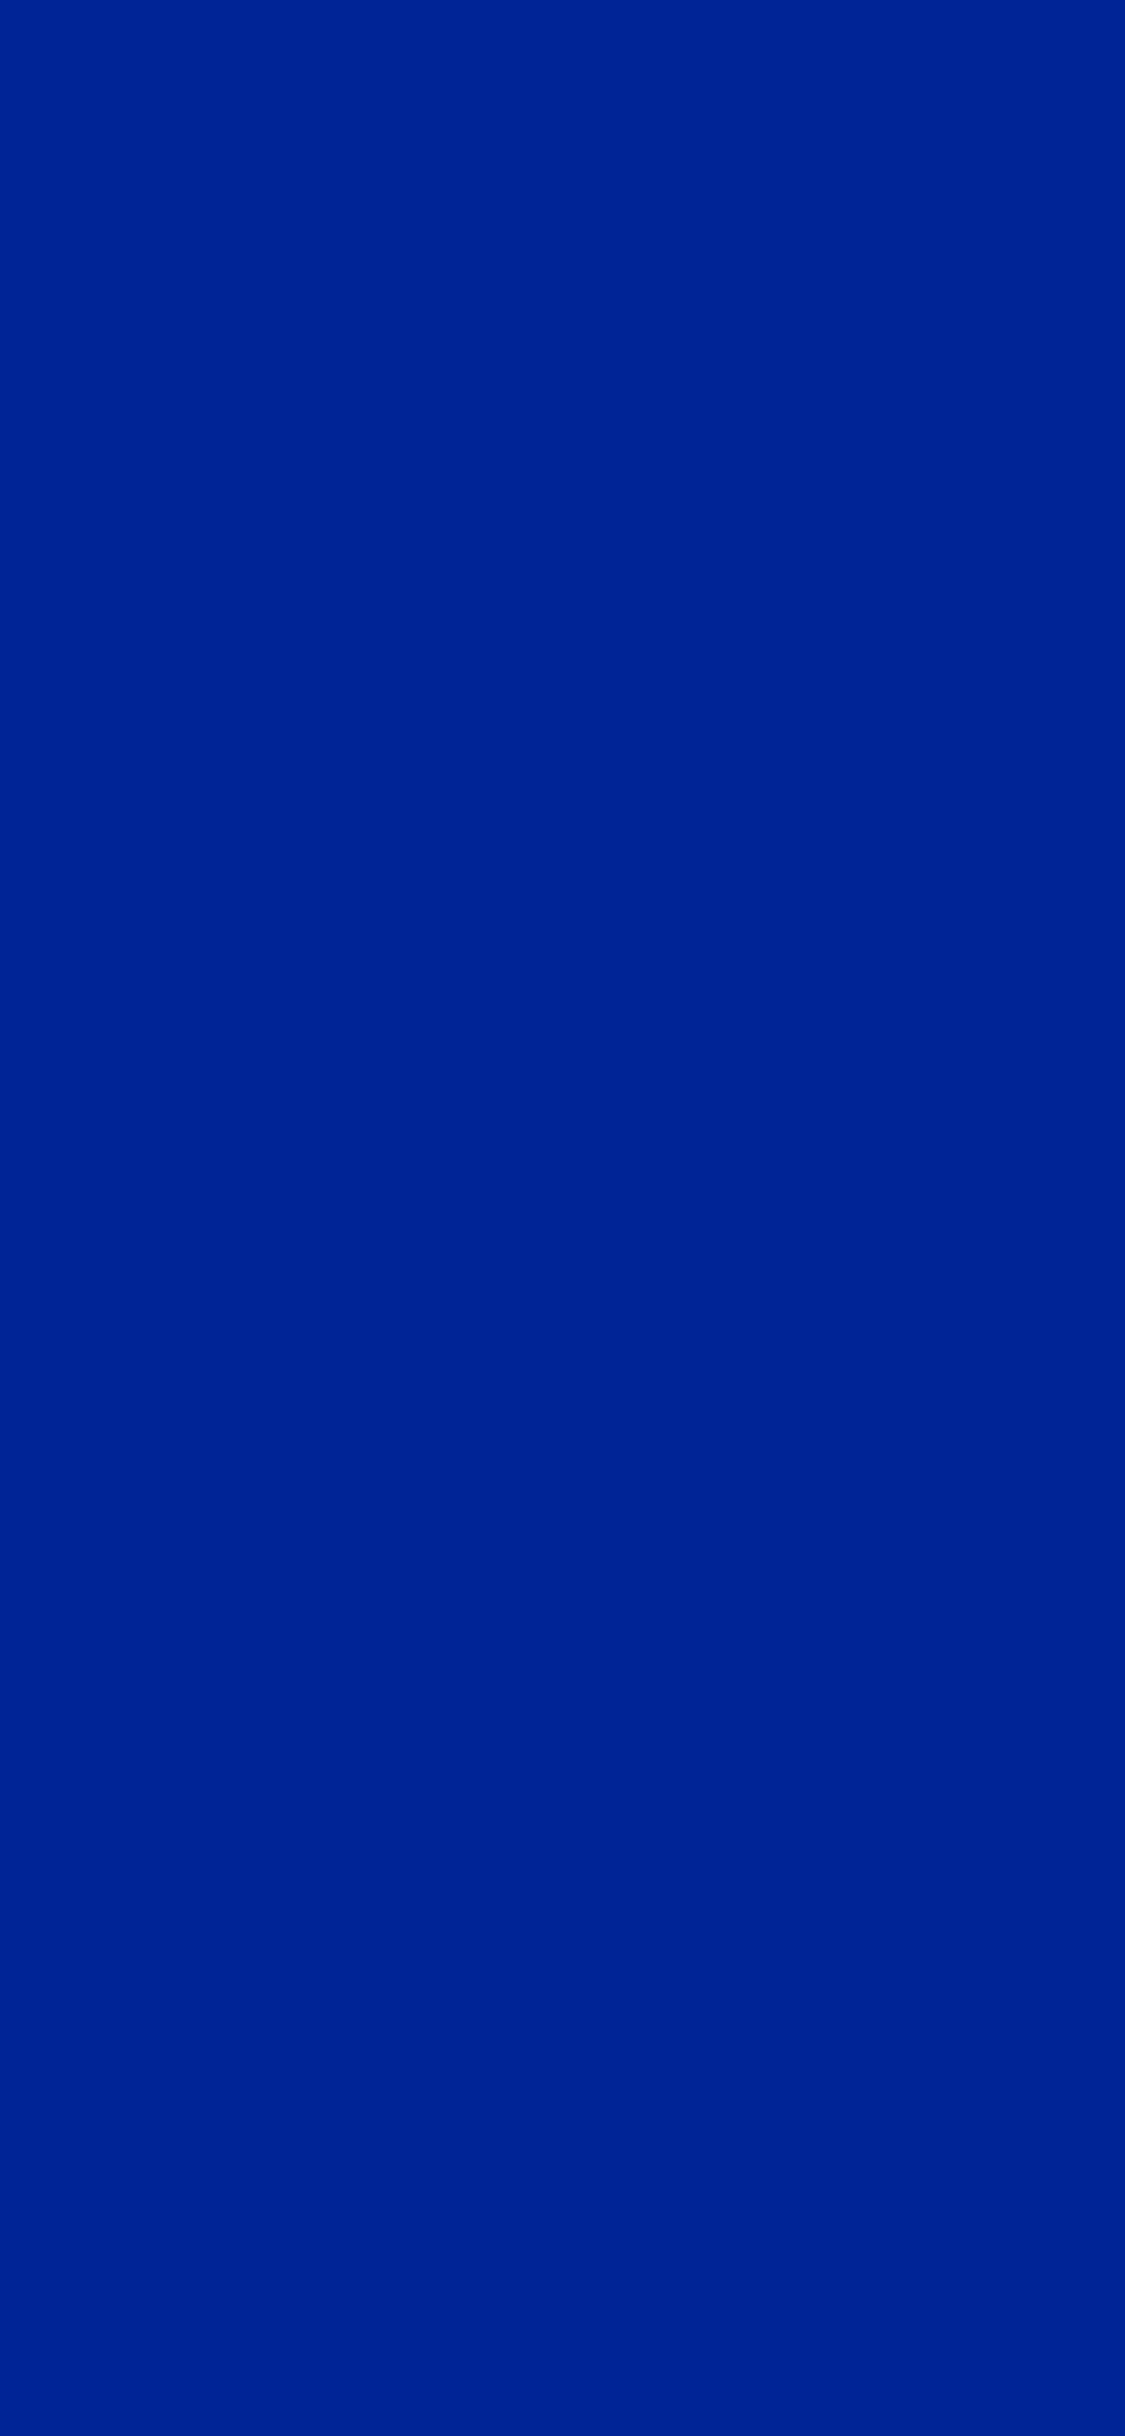 1125x2436 Imperial Blue Solid Color Background